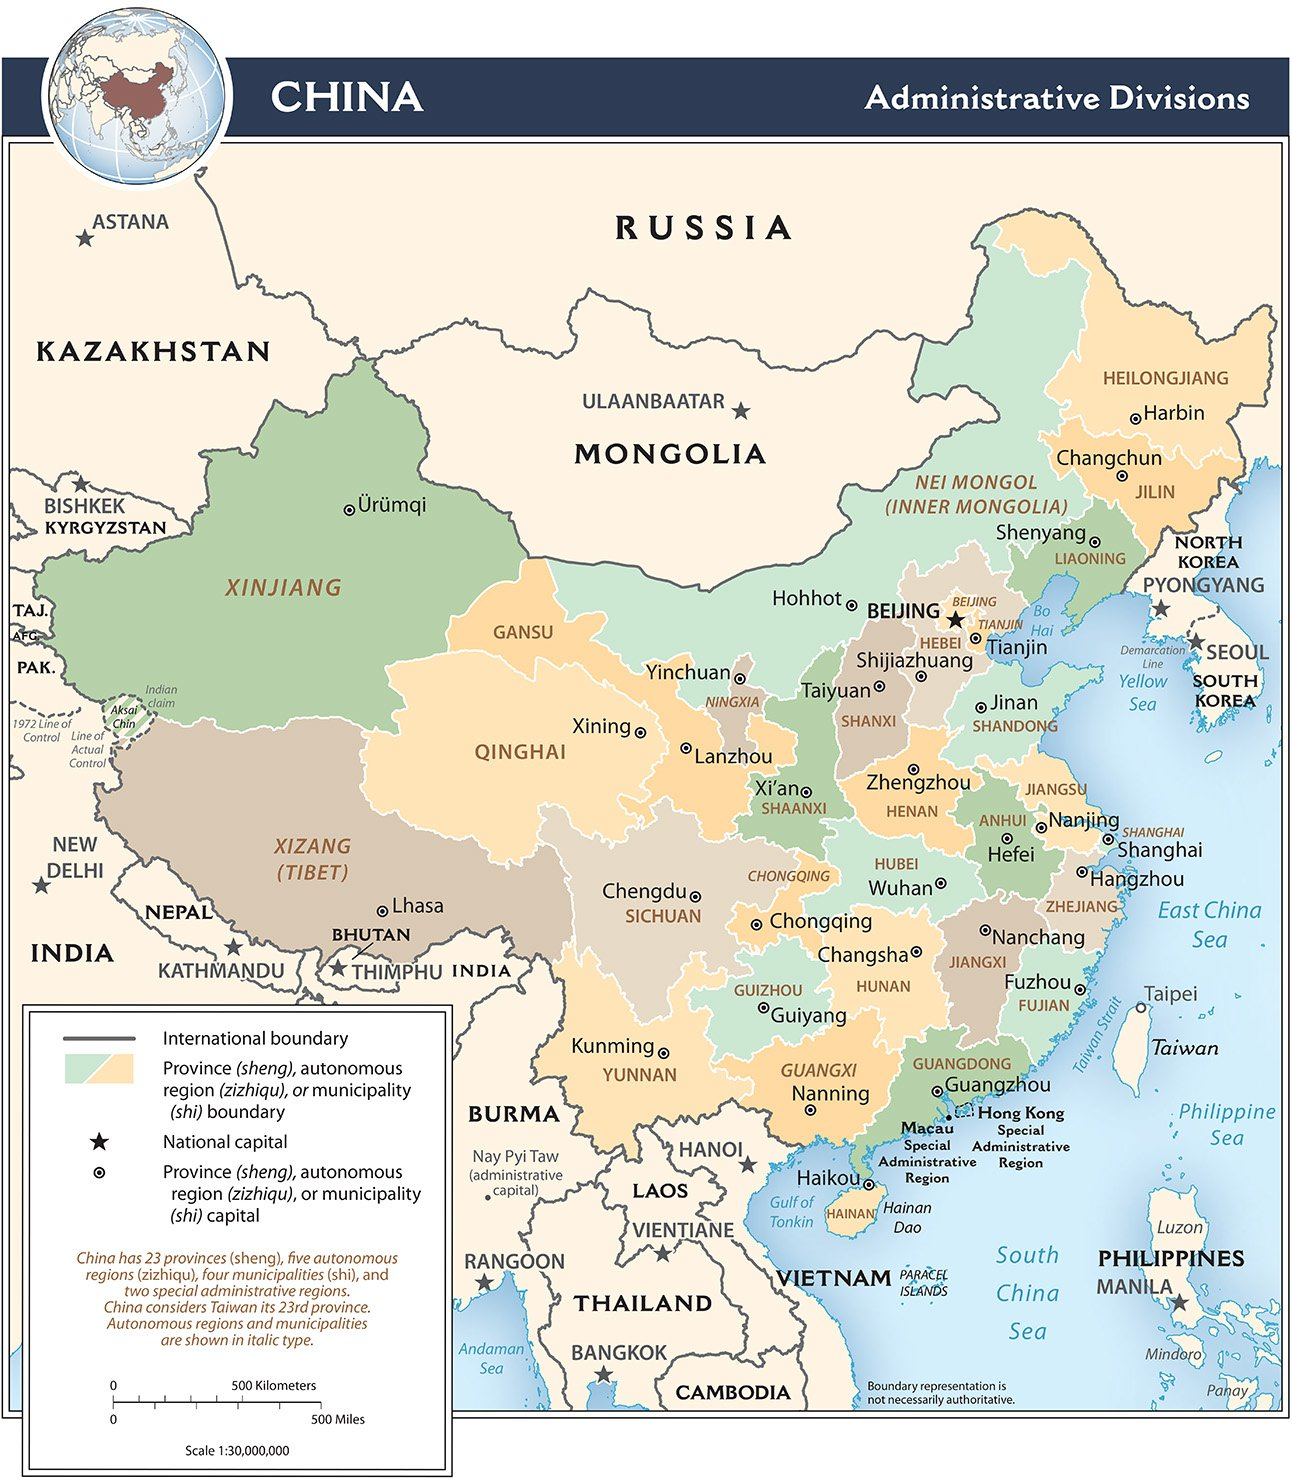 Amazoncom Map Poster China Administrative Divisions 24x21